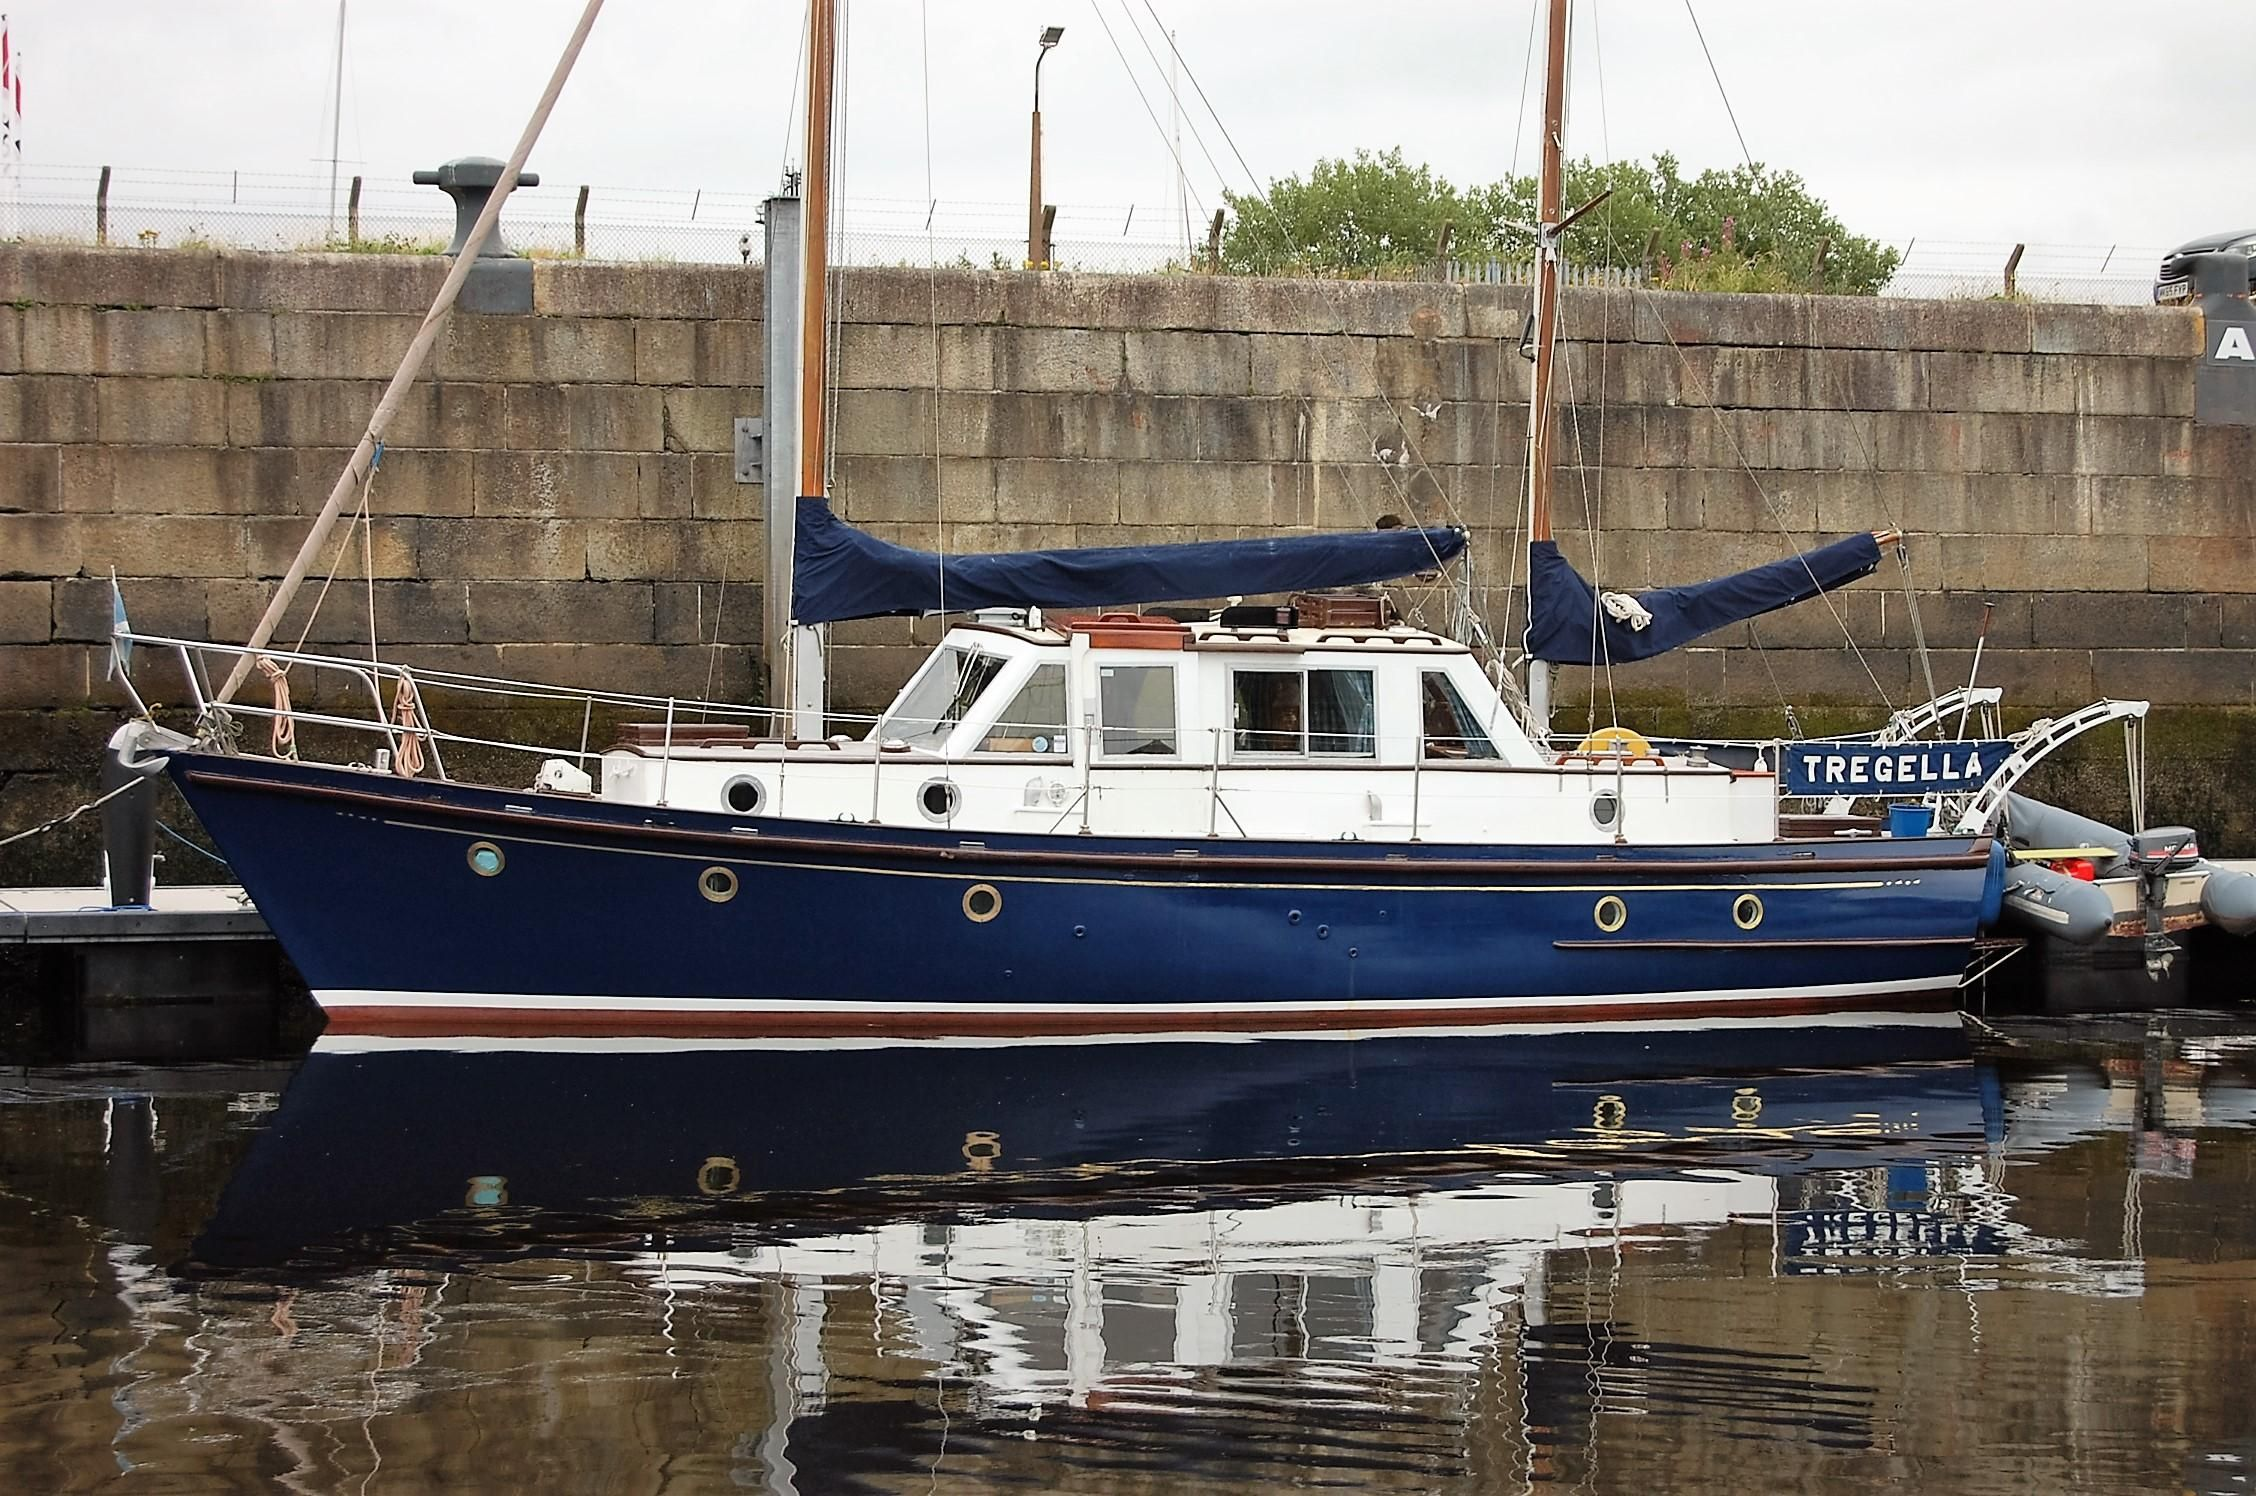 1965 lundy class motor sailer ketch sail boat for sale for Motor sailer boat plans